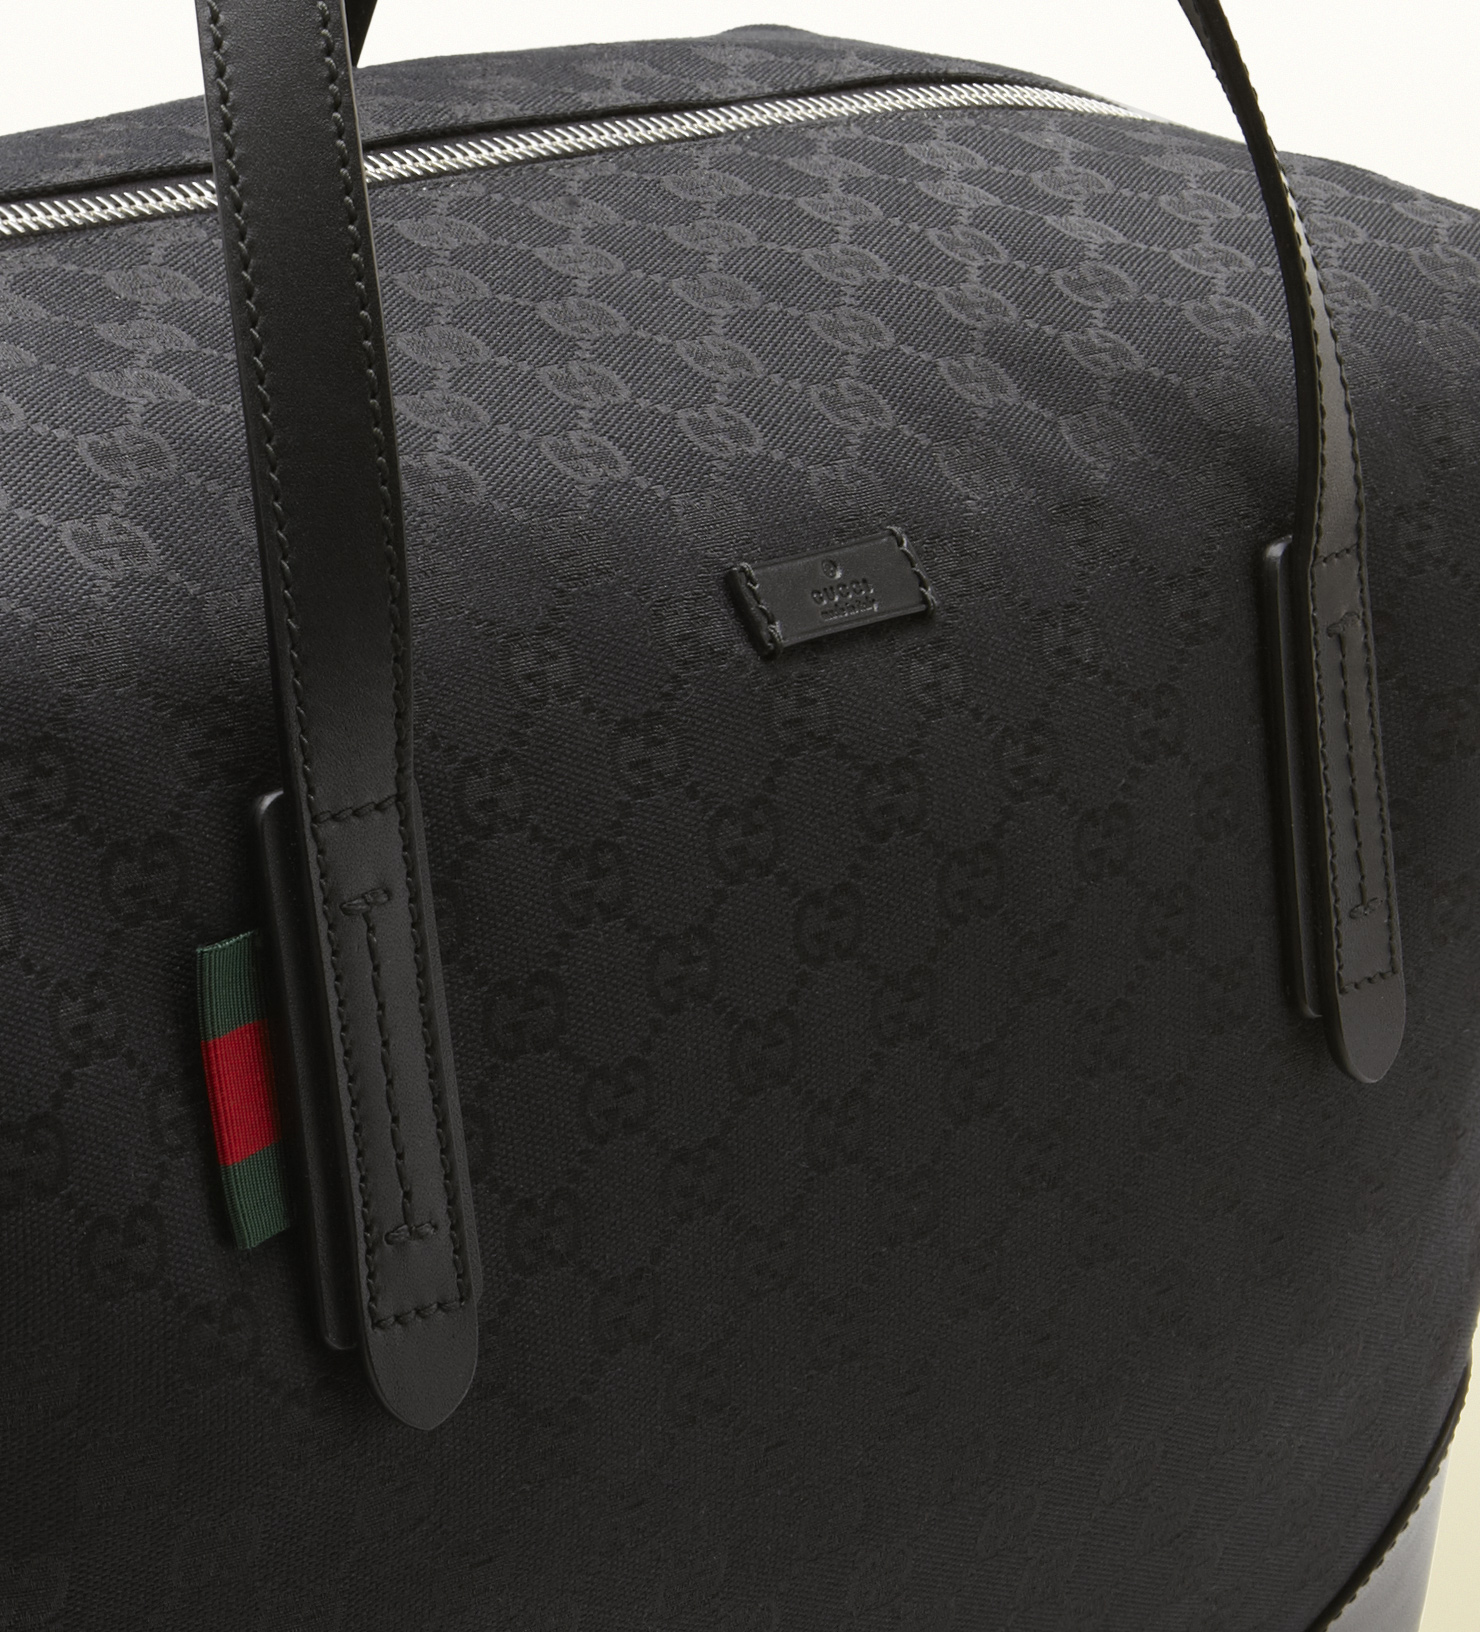 Lyst - Gucci Original Gg Canvas Carry-on Duffel Bag in Black for Men abfe281512c39